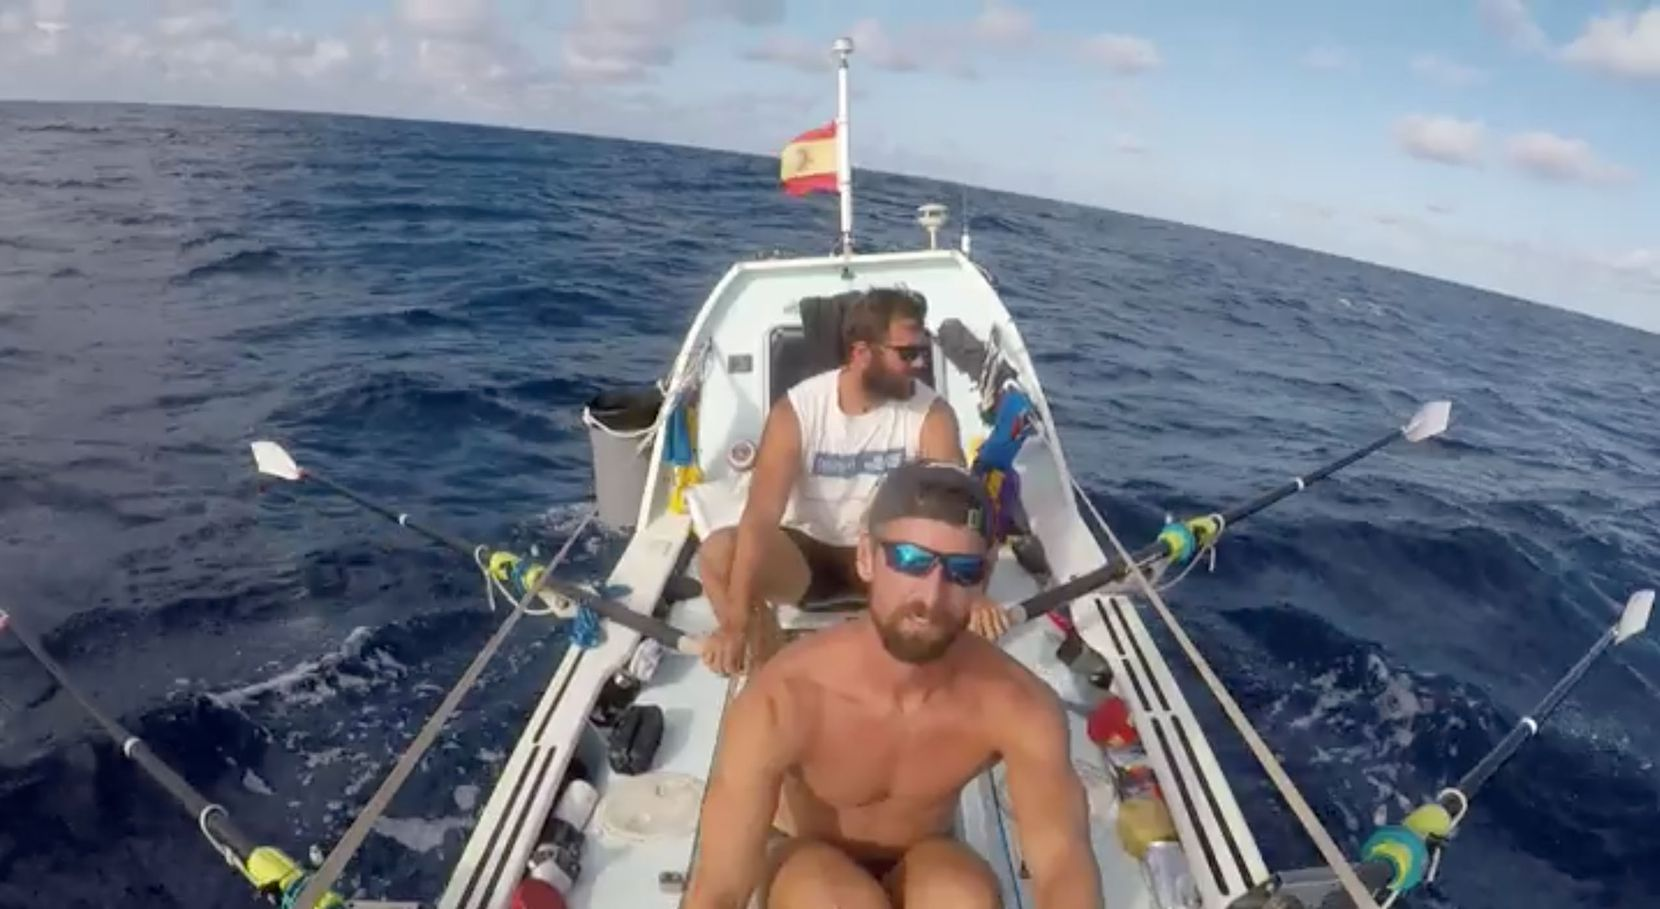 For Alviar (front), rowing the Atlantic was akin to climbing Mount Everest. Krauskopf (back) was nicknamed the Kraken, after the legendary sea monster, because of his strength on the oars.